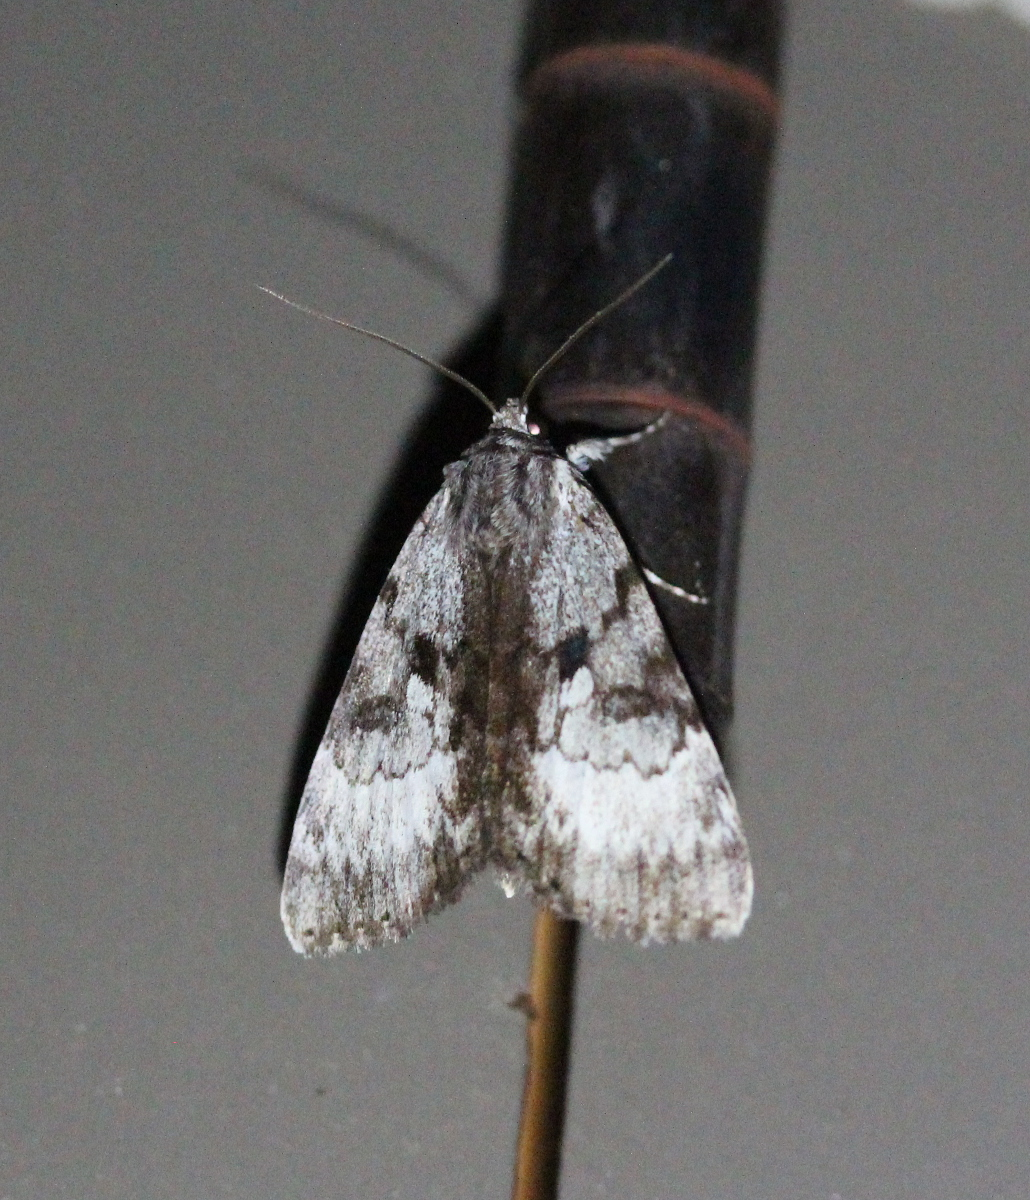 grey patterned moth